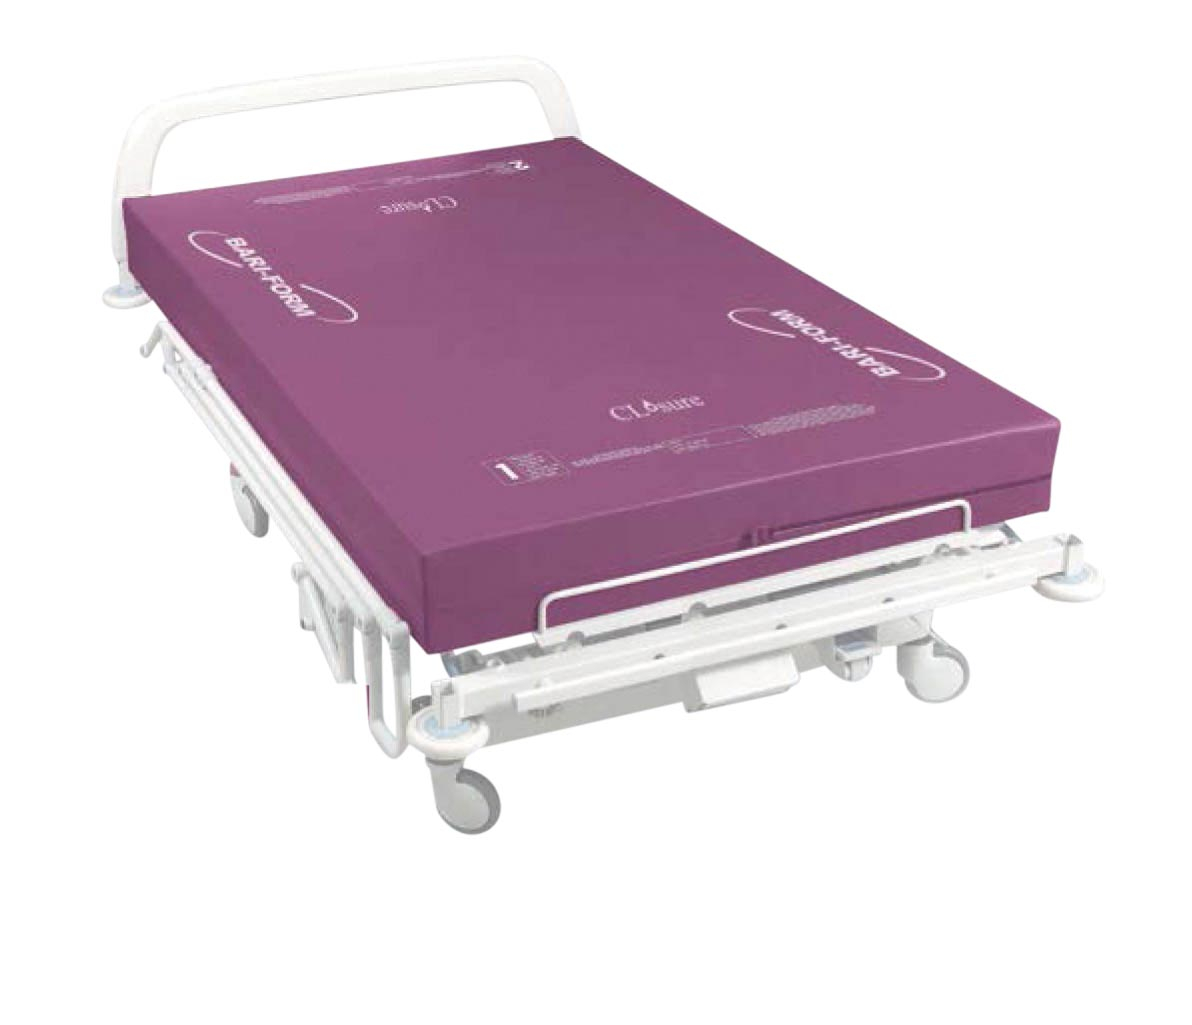 Bariatic Foam Mattress - High Risk - 3ft 11inches